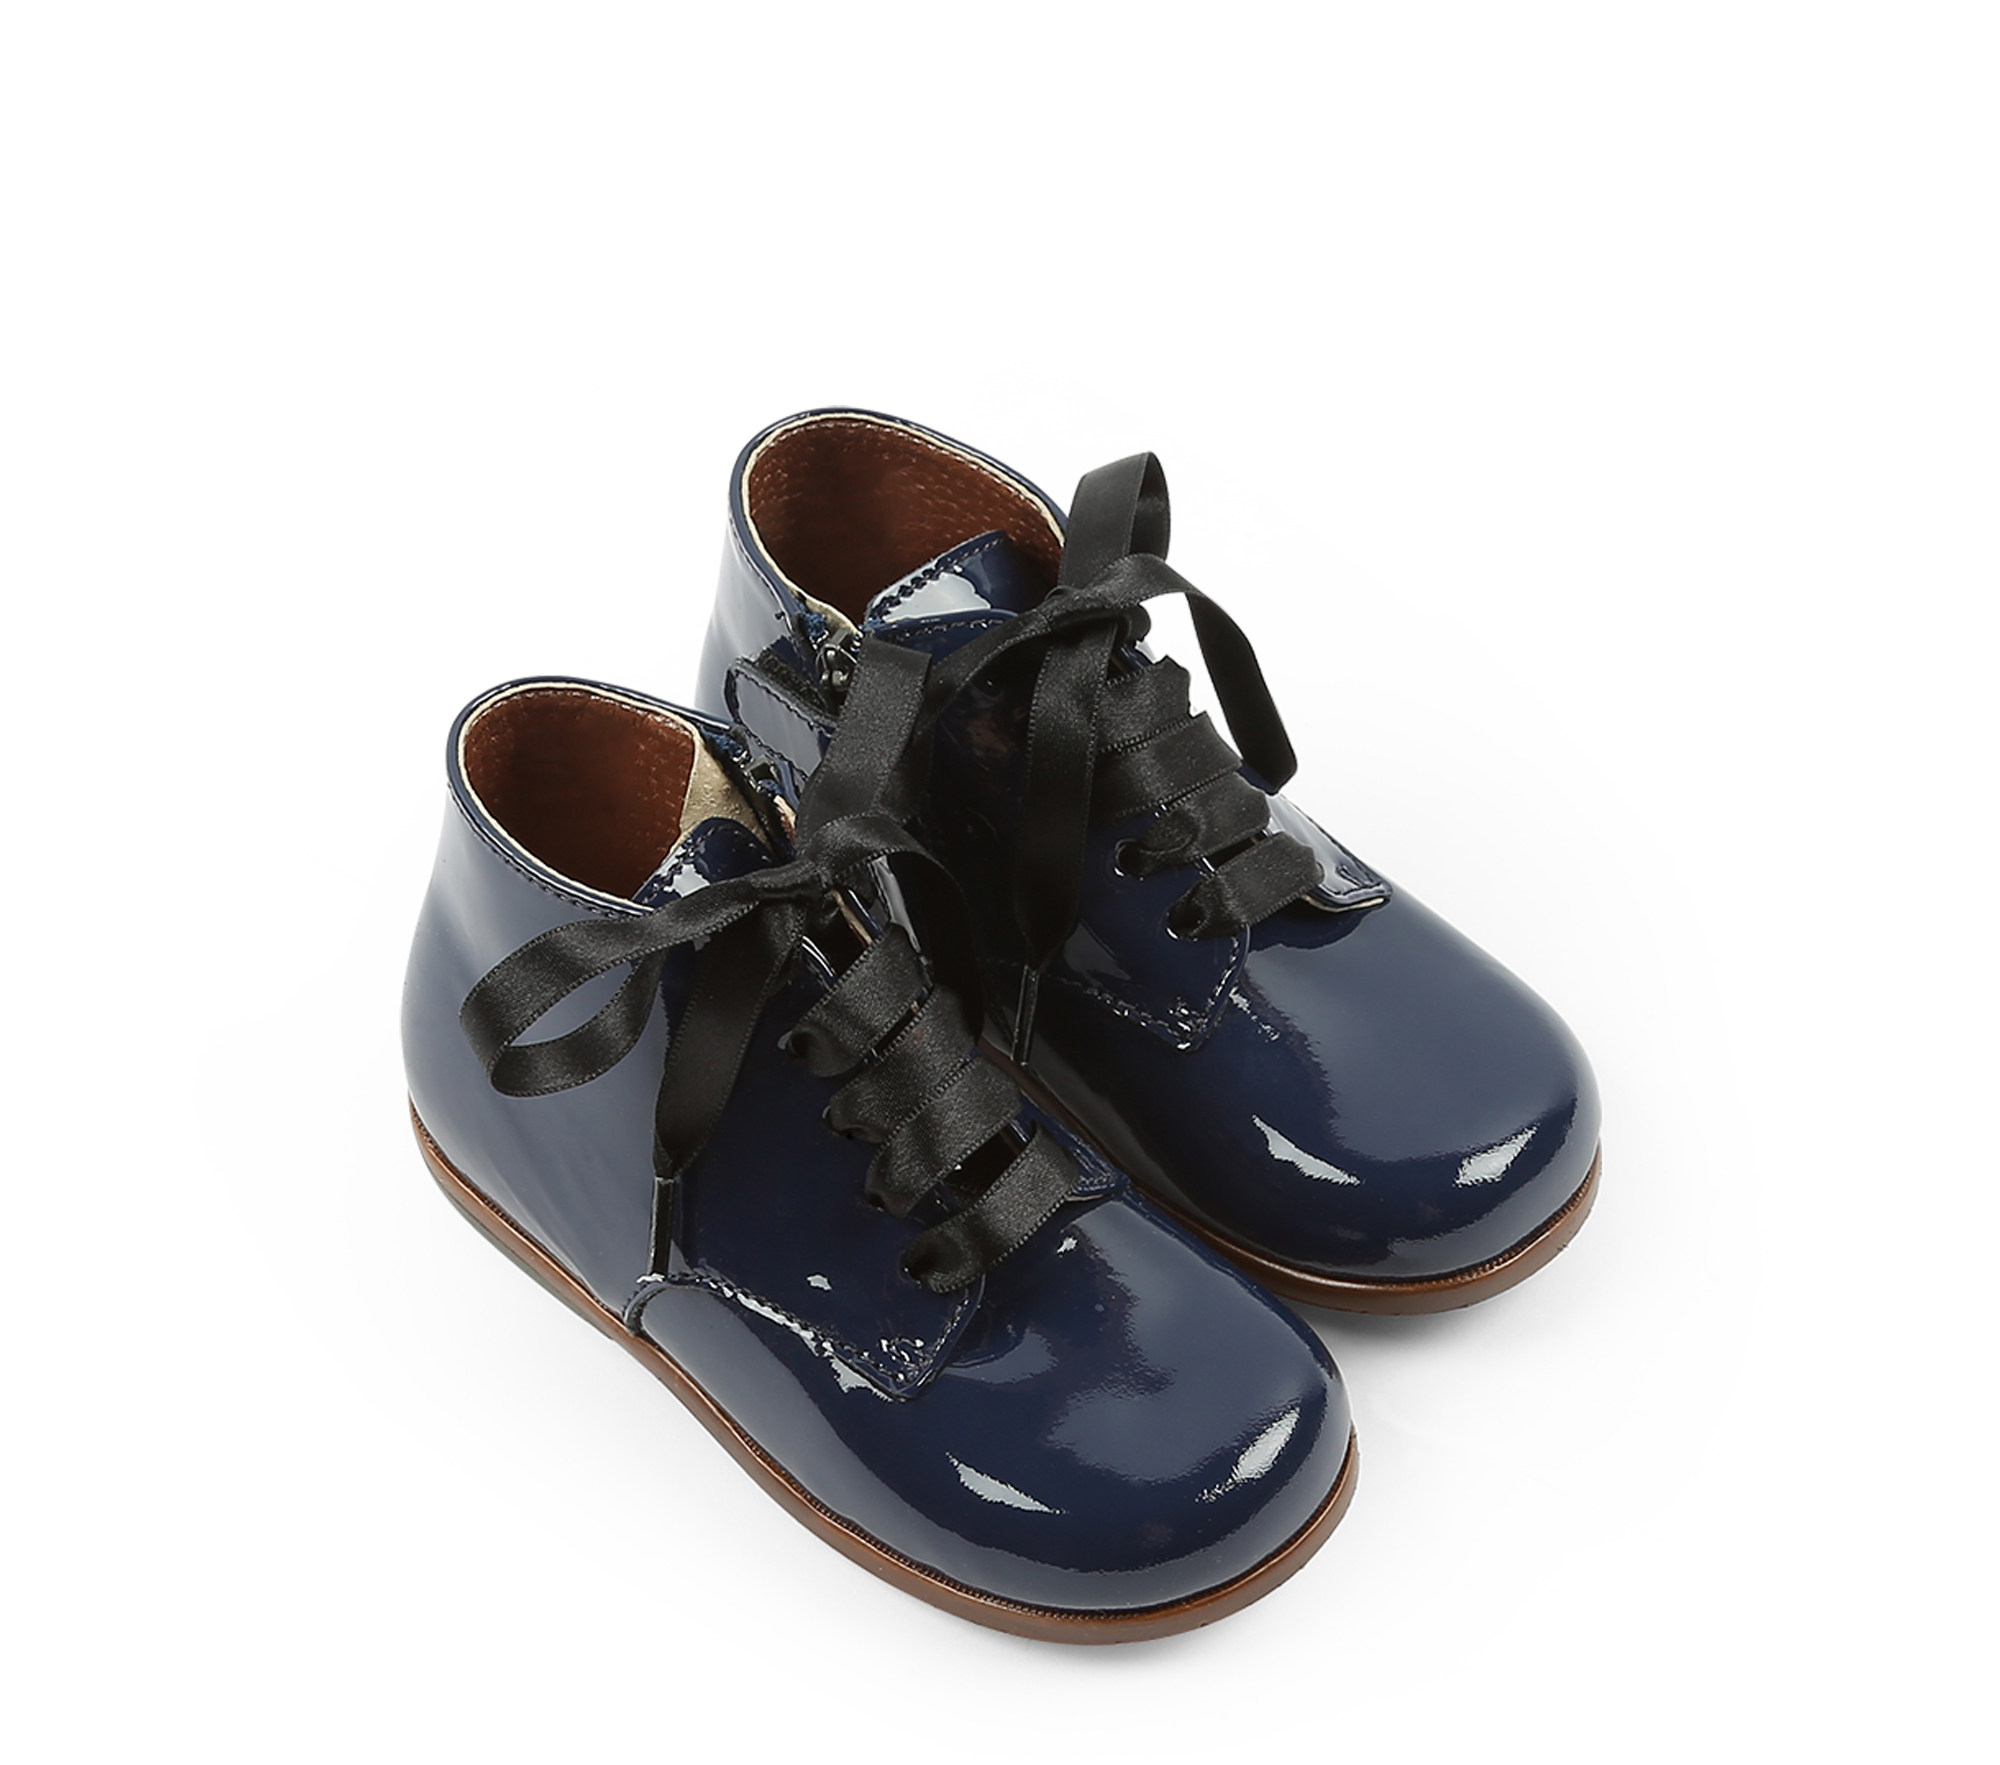 Kid oxford shoes - Baby